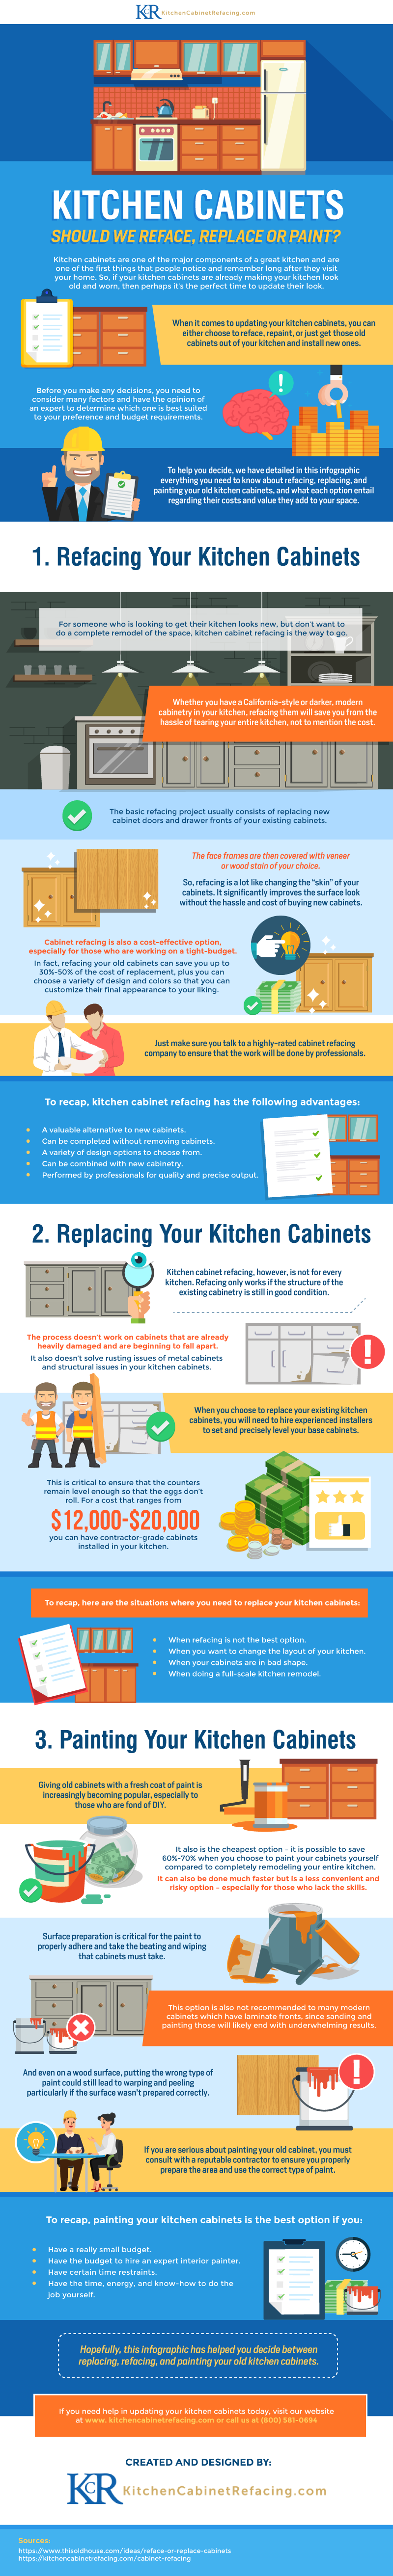 Kitchen Cabinets Infographic